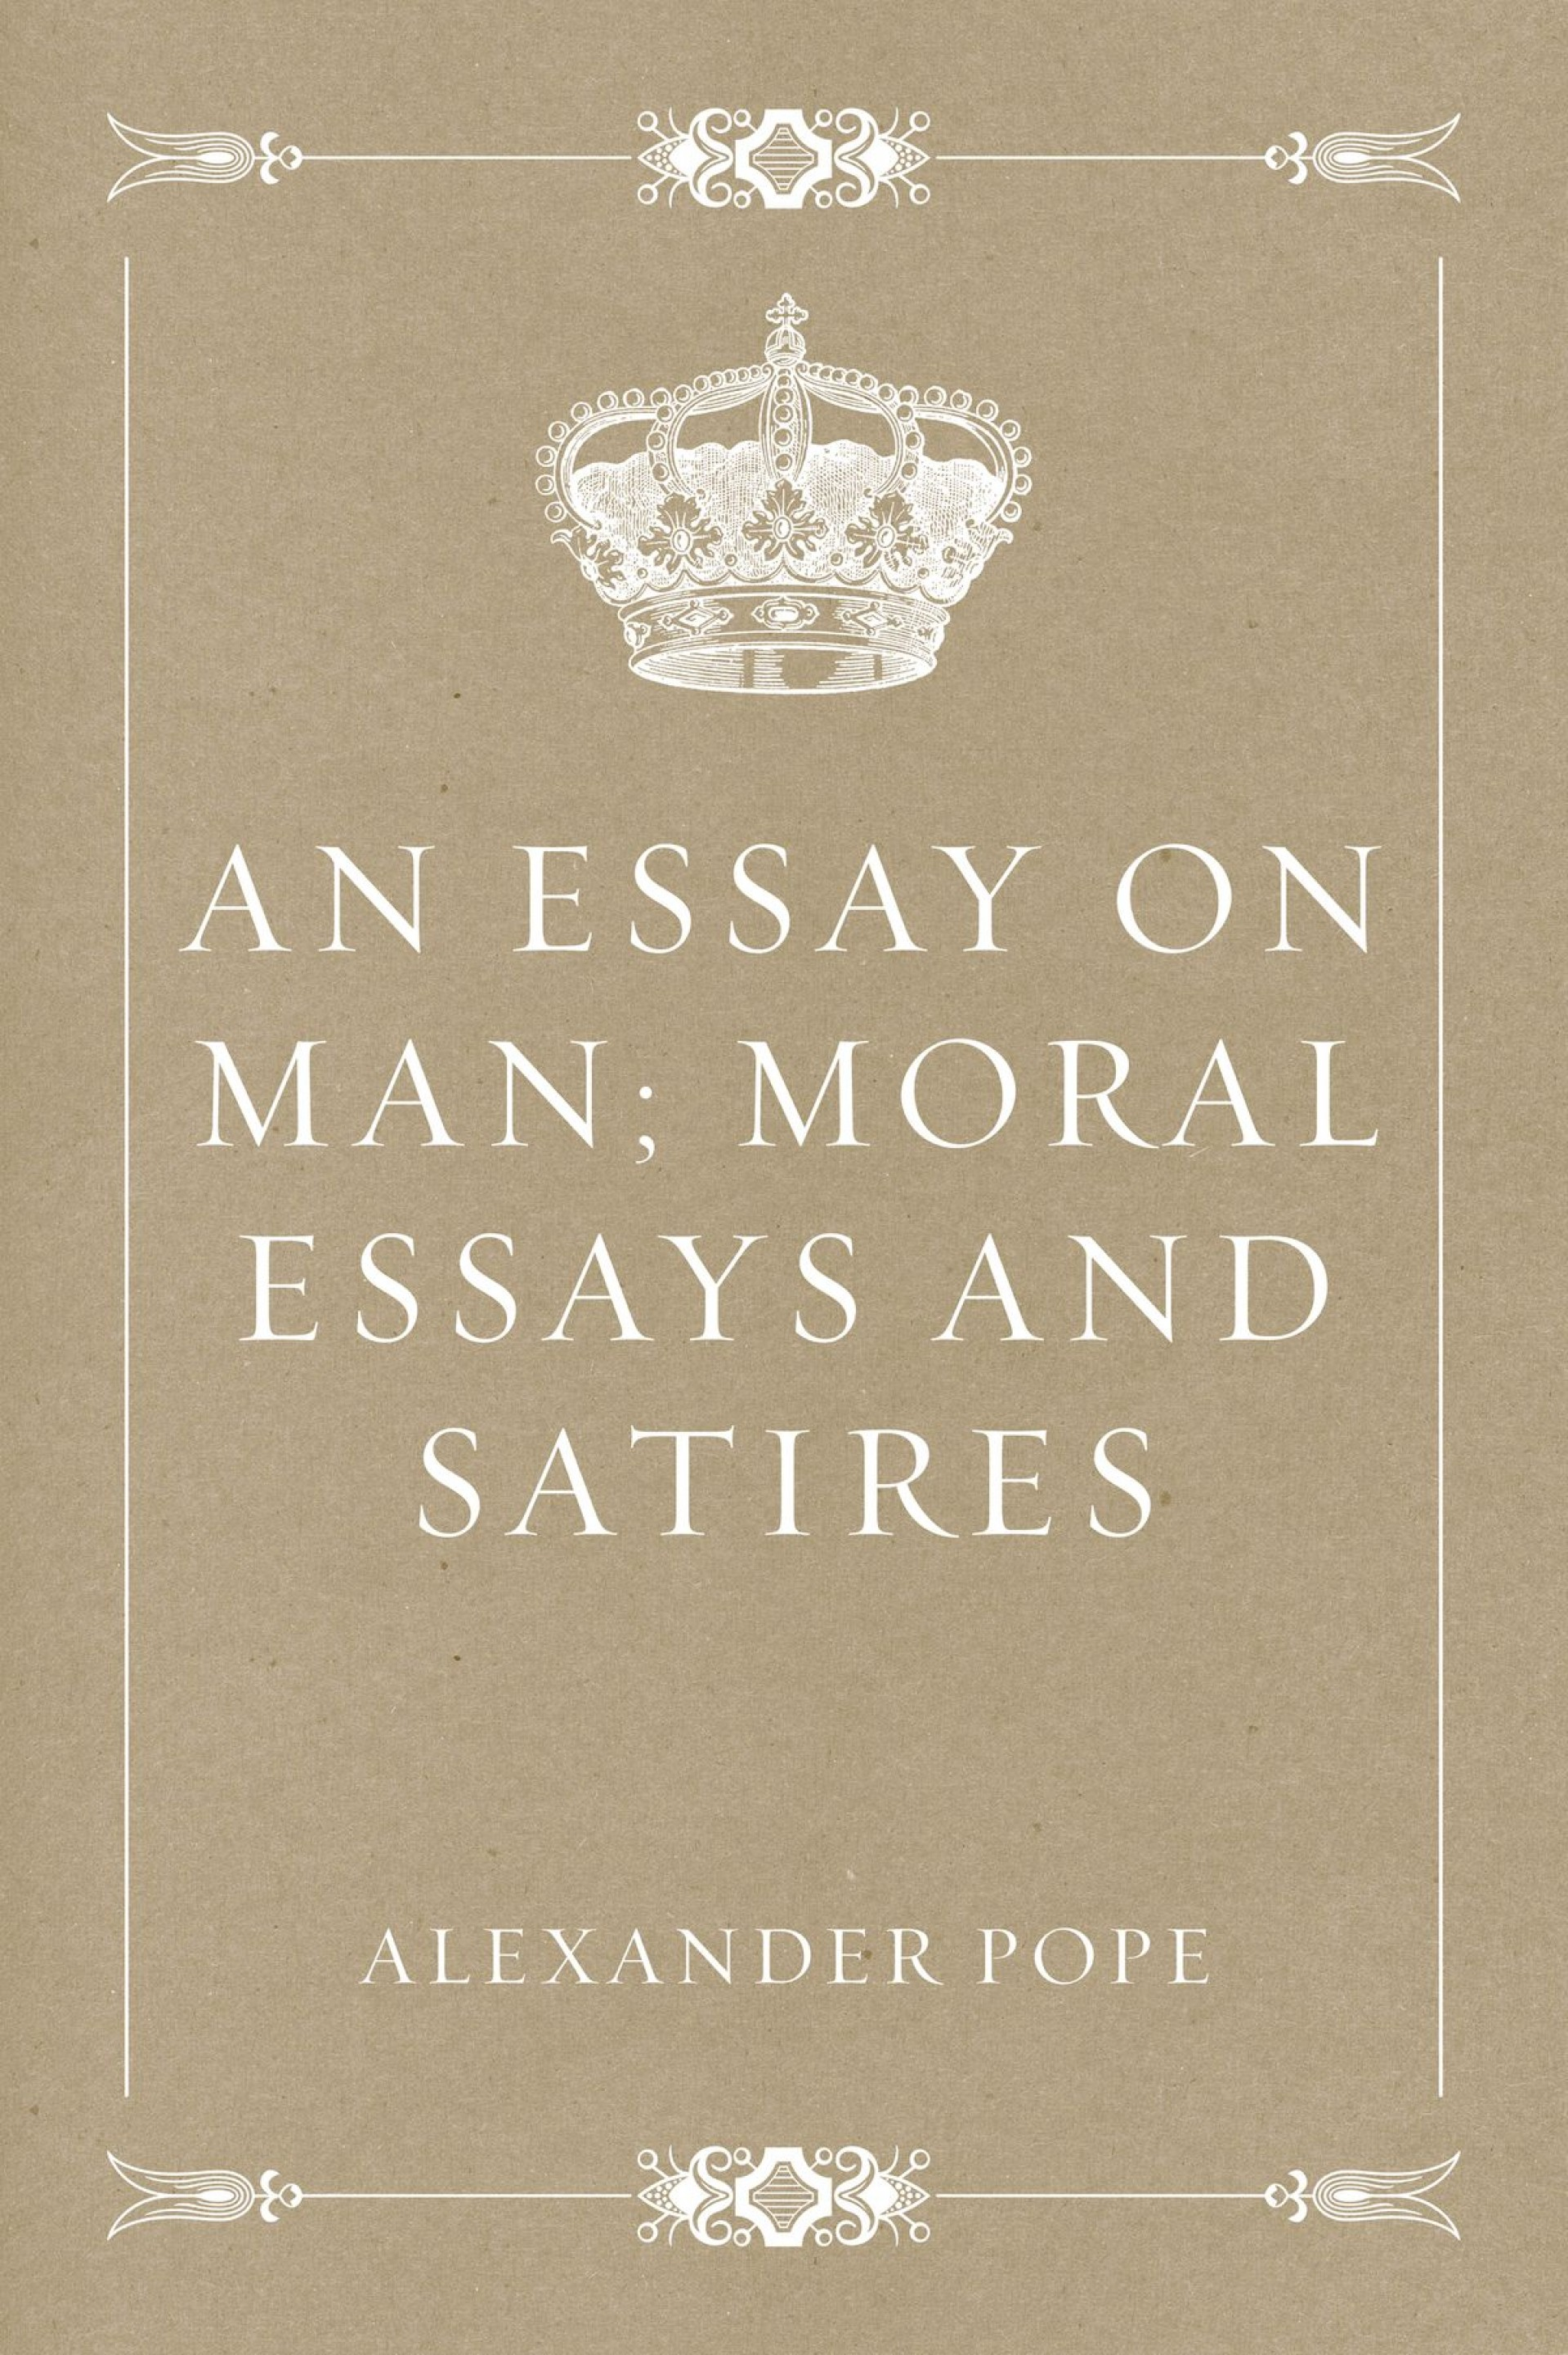 007 Essay Example An On Man Moral Essays And Satires Alexander Dreaded Pope Summary Epistle 2 Pdf 1920